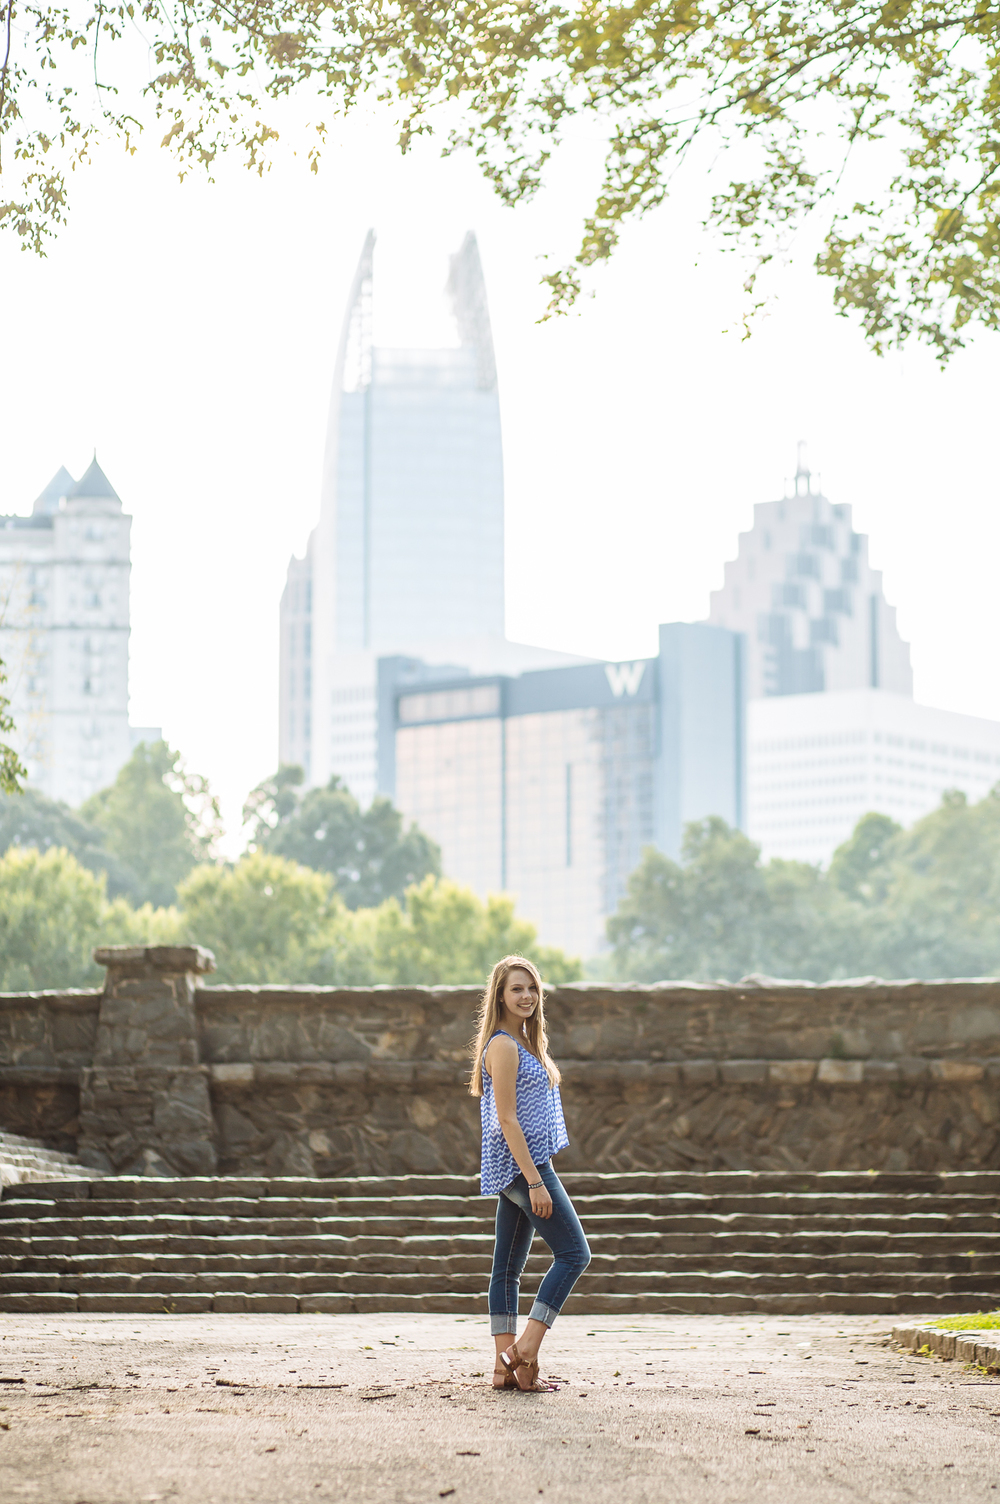 piedmont_park_atlanta_atl_photo_senior_portaits_erin_spruell_photography_8